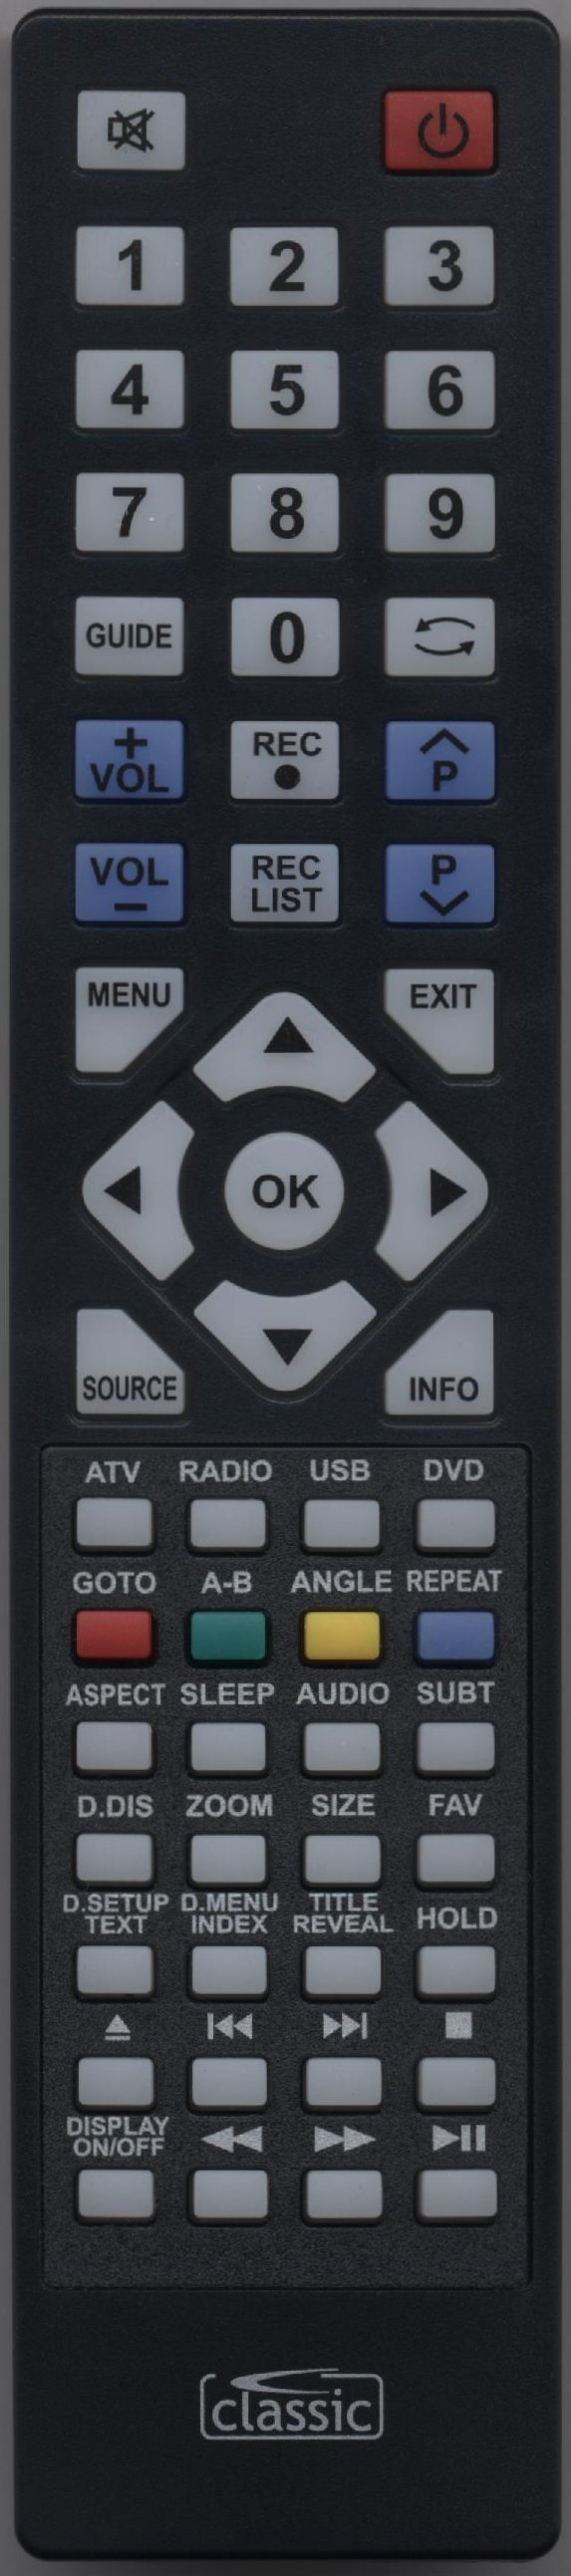 BLAUPUNKT W40/48G-GB-FTCDUP-UK Remote Control Alternative